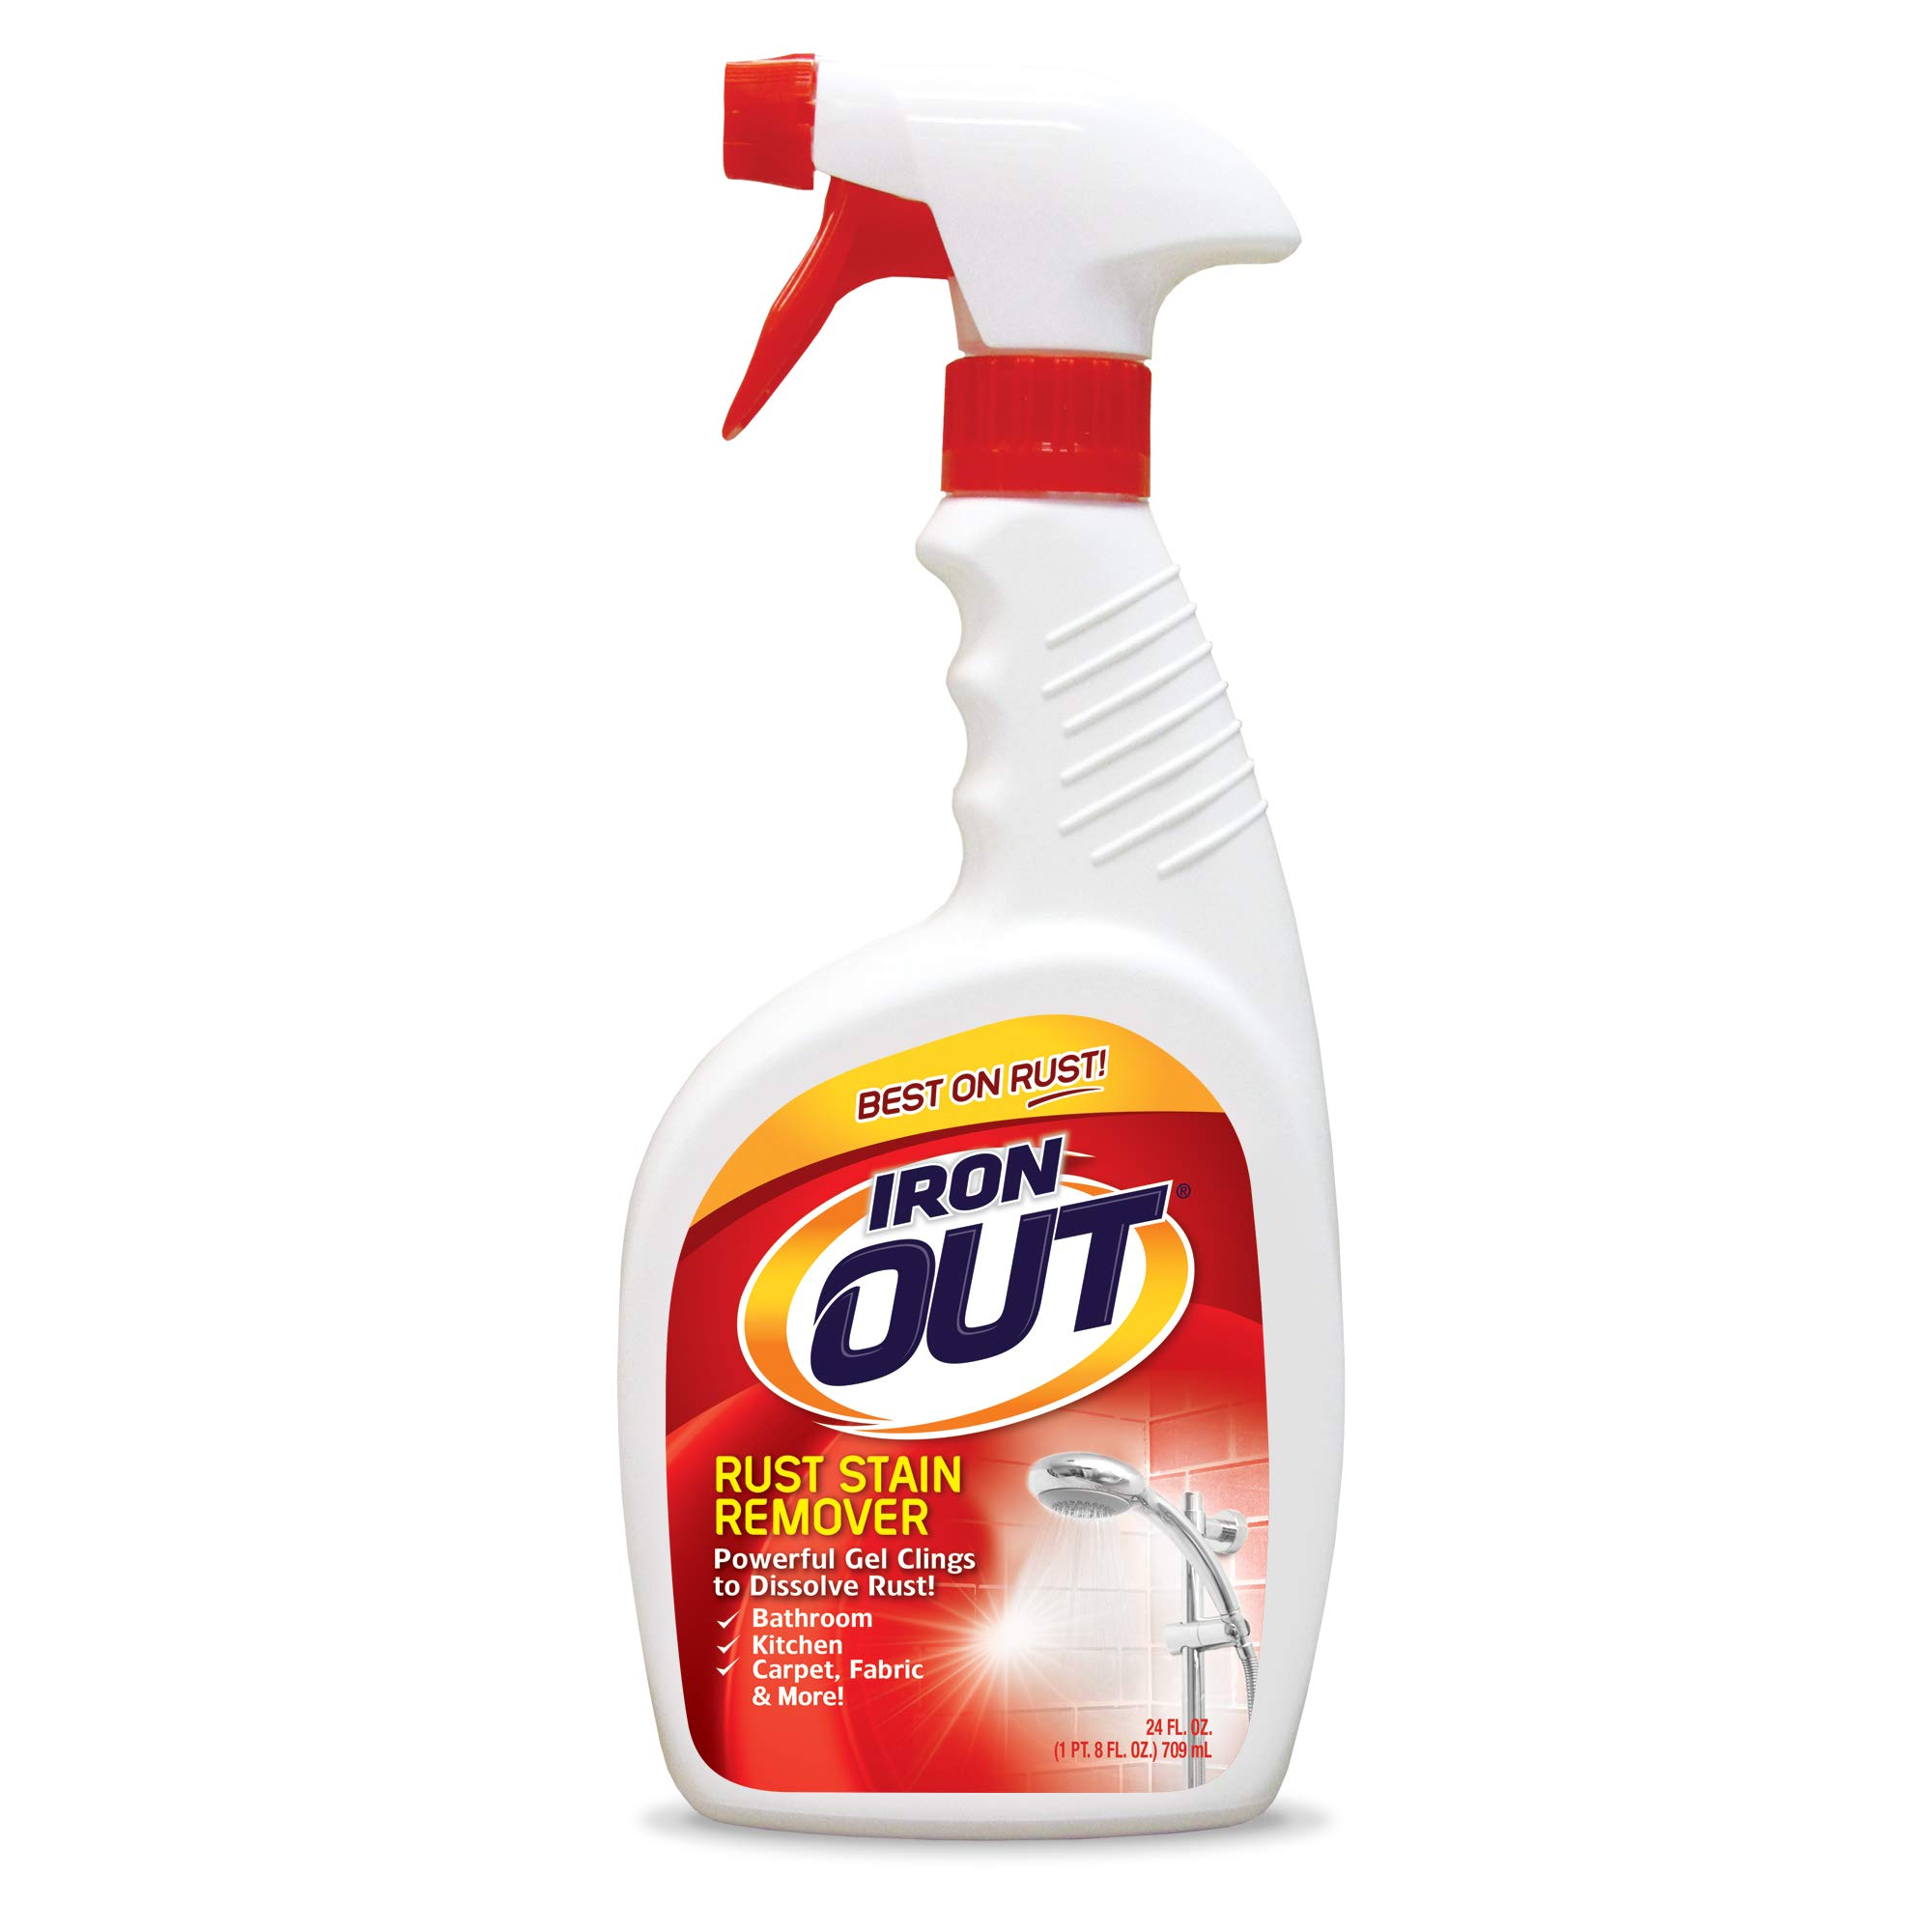 Iron OUT Rust Stain Remover Spray Gel, 24 Fl. Oz. Bottle, 6 Pack by Summit Brands